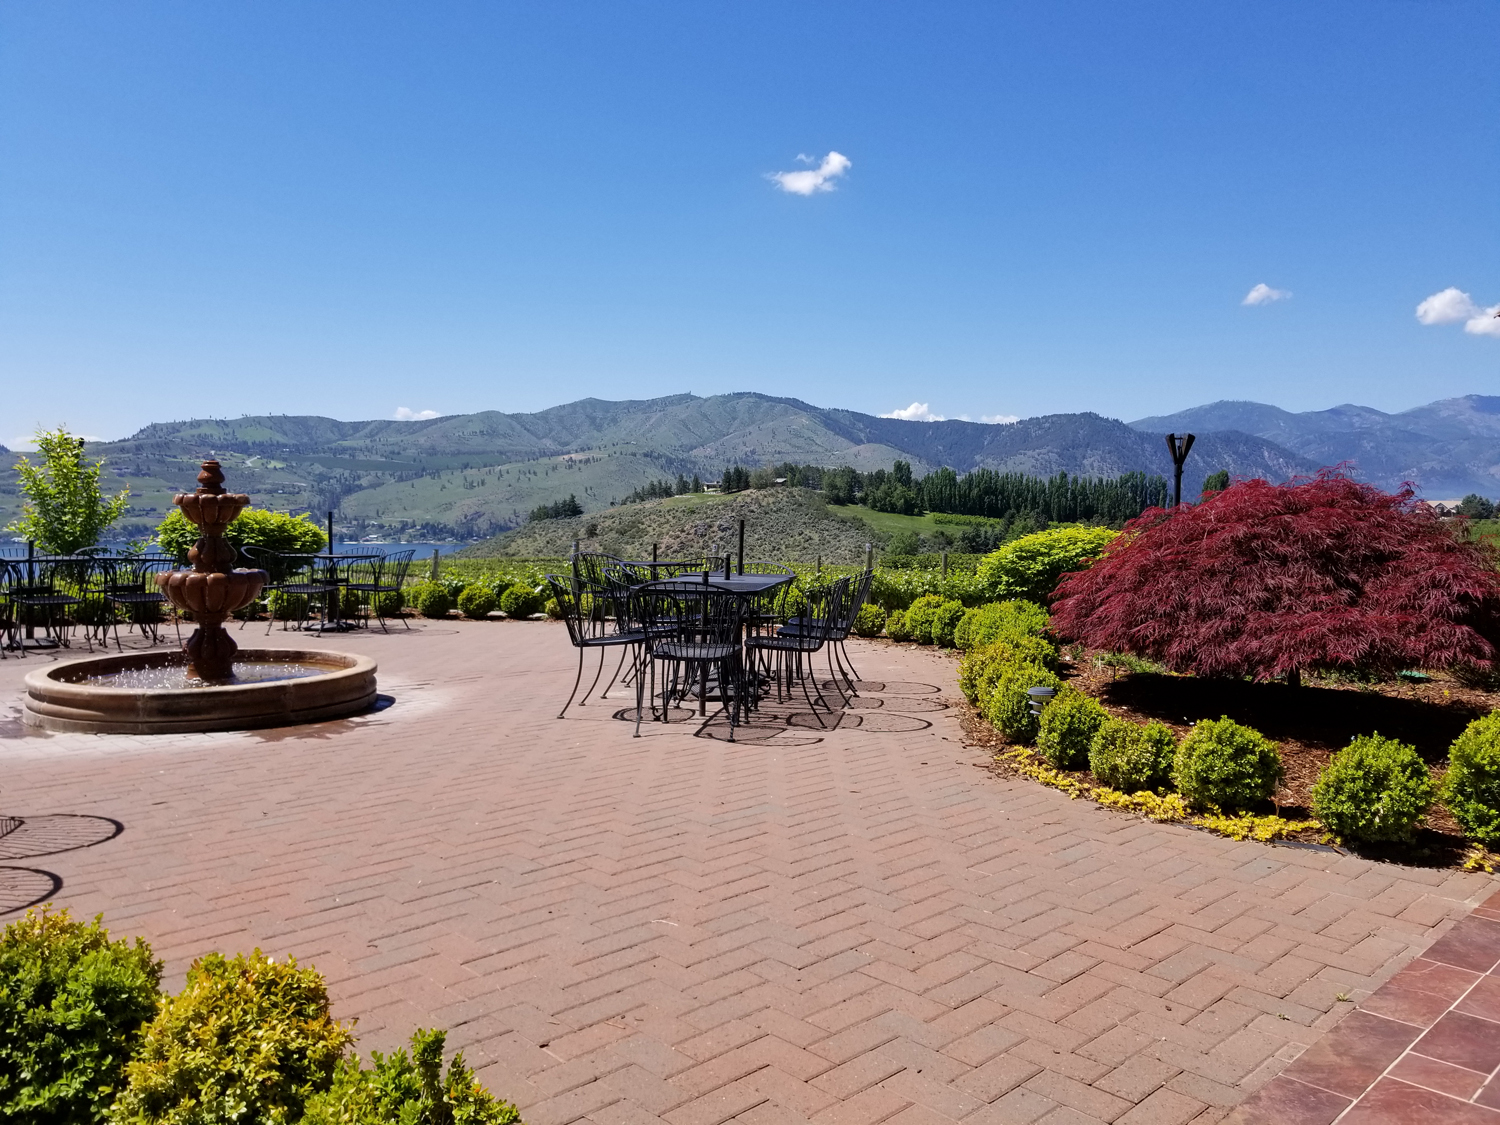 Lunch at one of the many wineries nestled around Lake Chelan